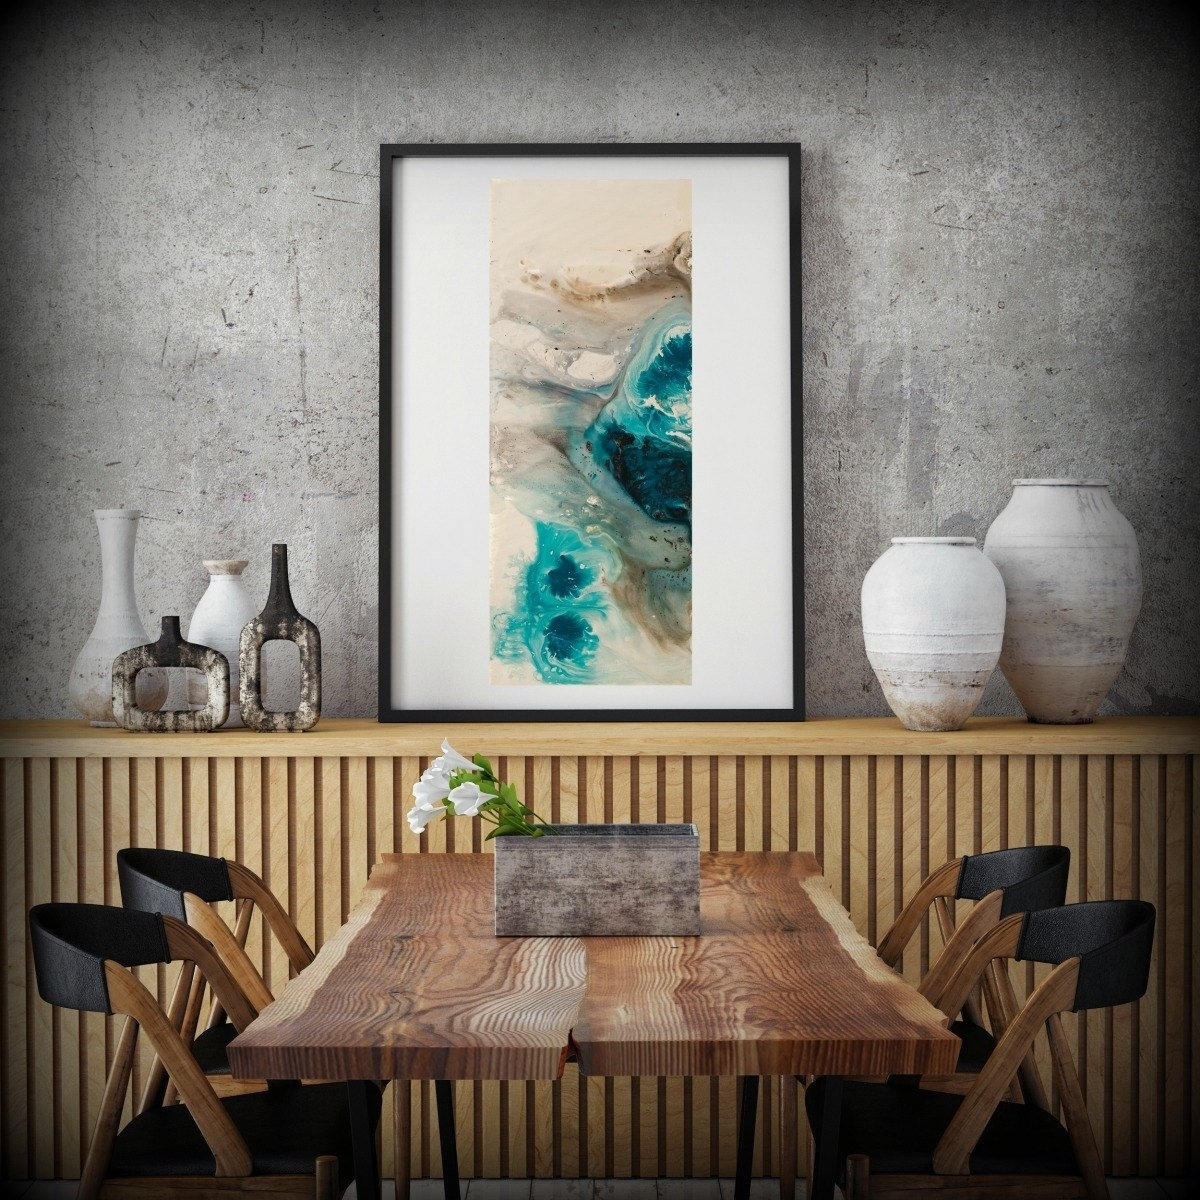 Minimalist Art, Boho Decor, Bohemian Wall Decor, Bedroom Decor Within Latest Affordable Wall Art (View 16 of 20)